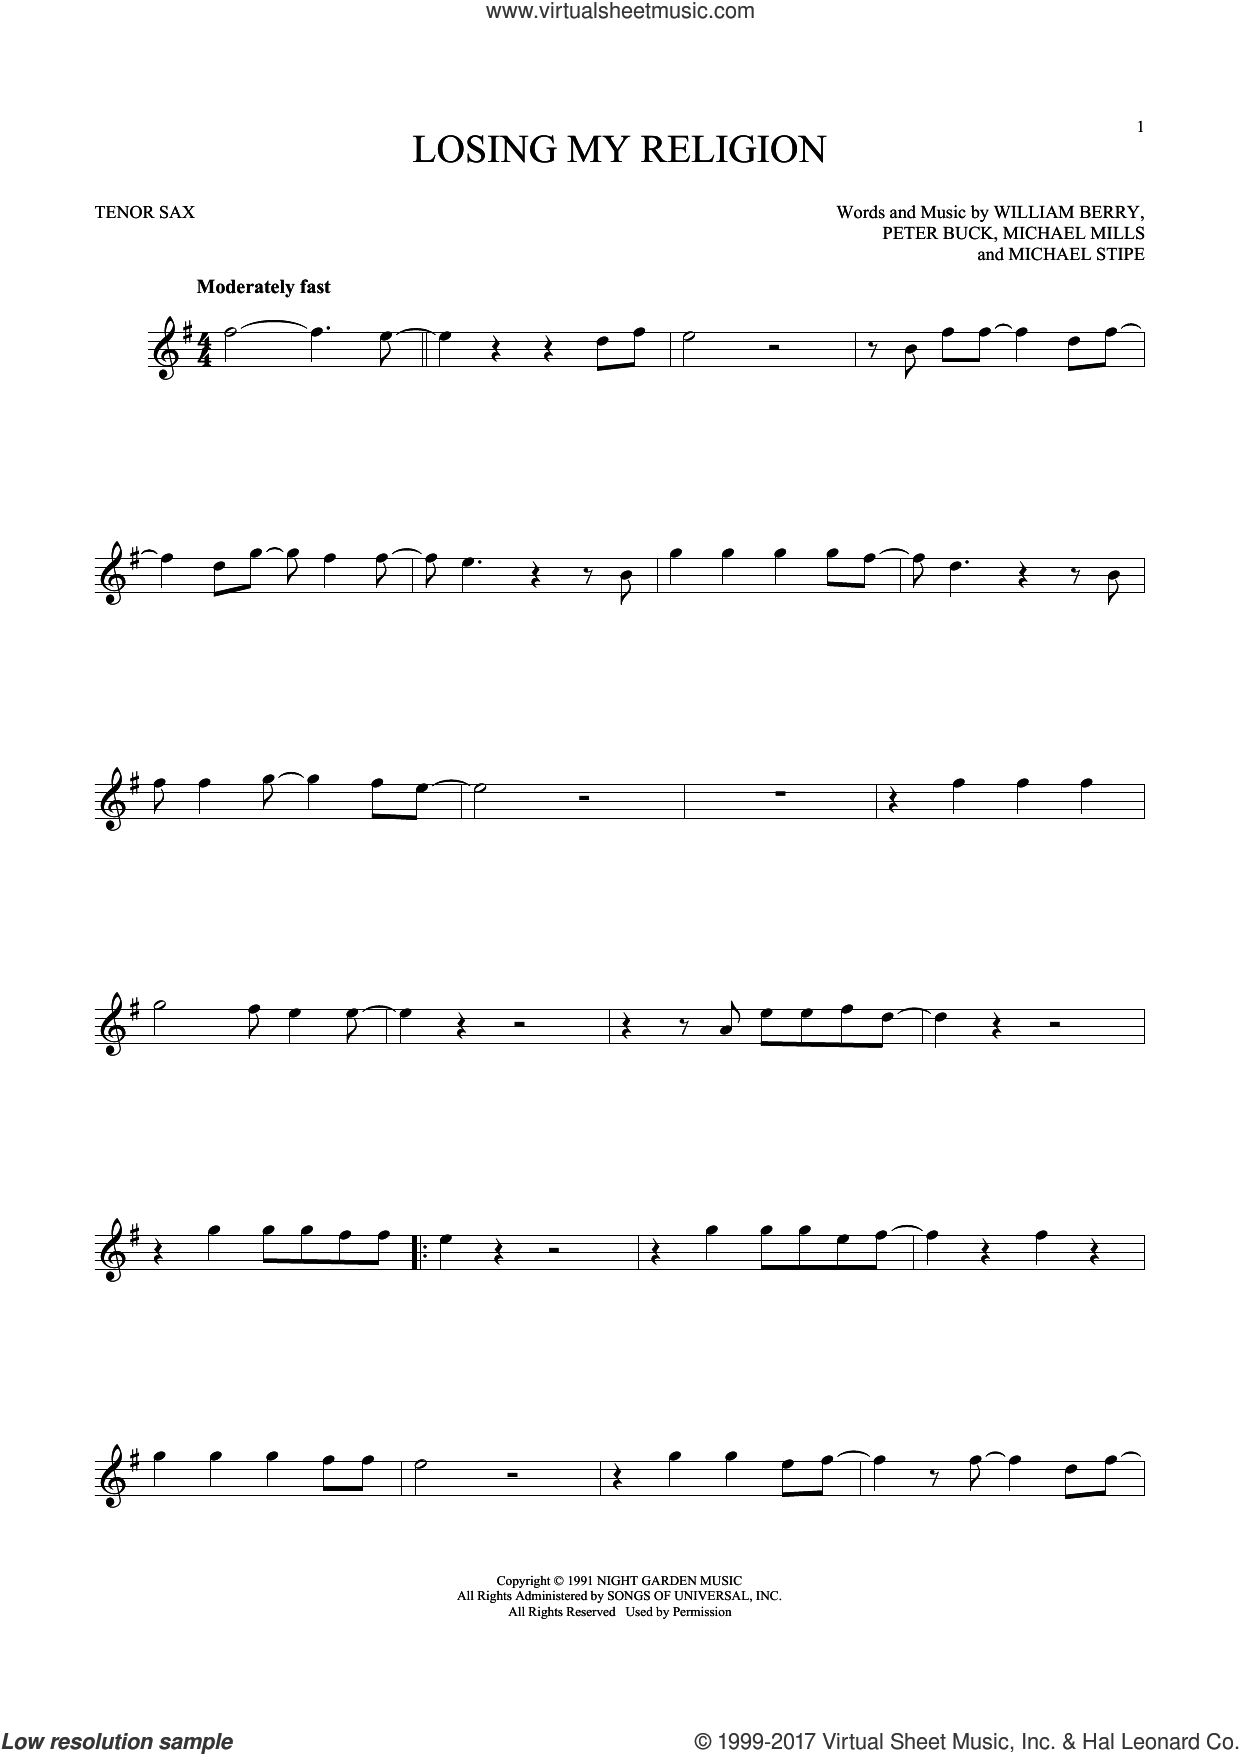 Rem Losing My Religion Sheet Music For Tenor Saxophone Solo